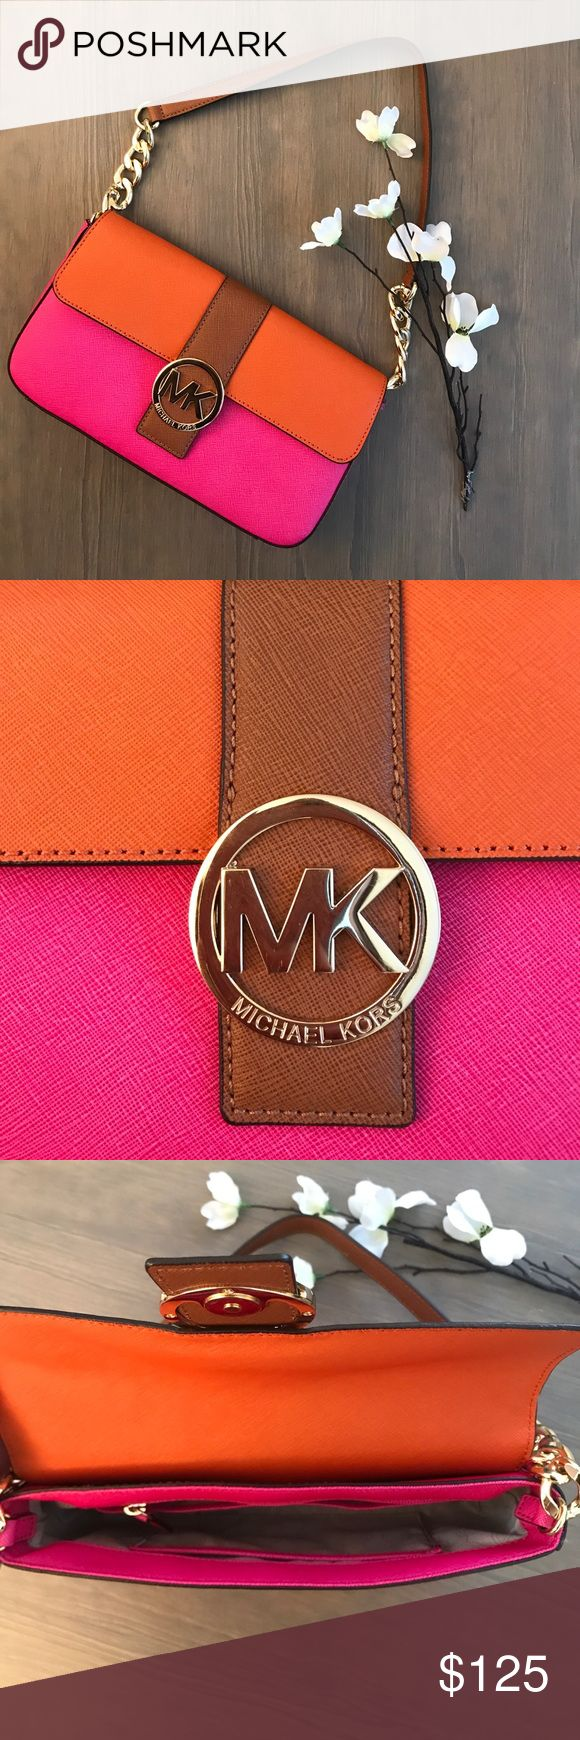 NWOT Michael Kors Pink and Orange Shoulder Bag Never used! In perfect condition Michael Kors orange and pink shoulder bag. Authenticity tag pictured! This is a super cute bag. Perfect to complete your girly look! Comes with dust bag! Michael Kors Bags Shoulder Bags